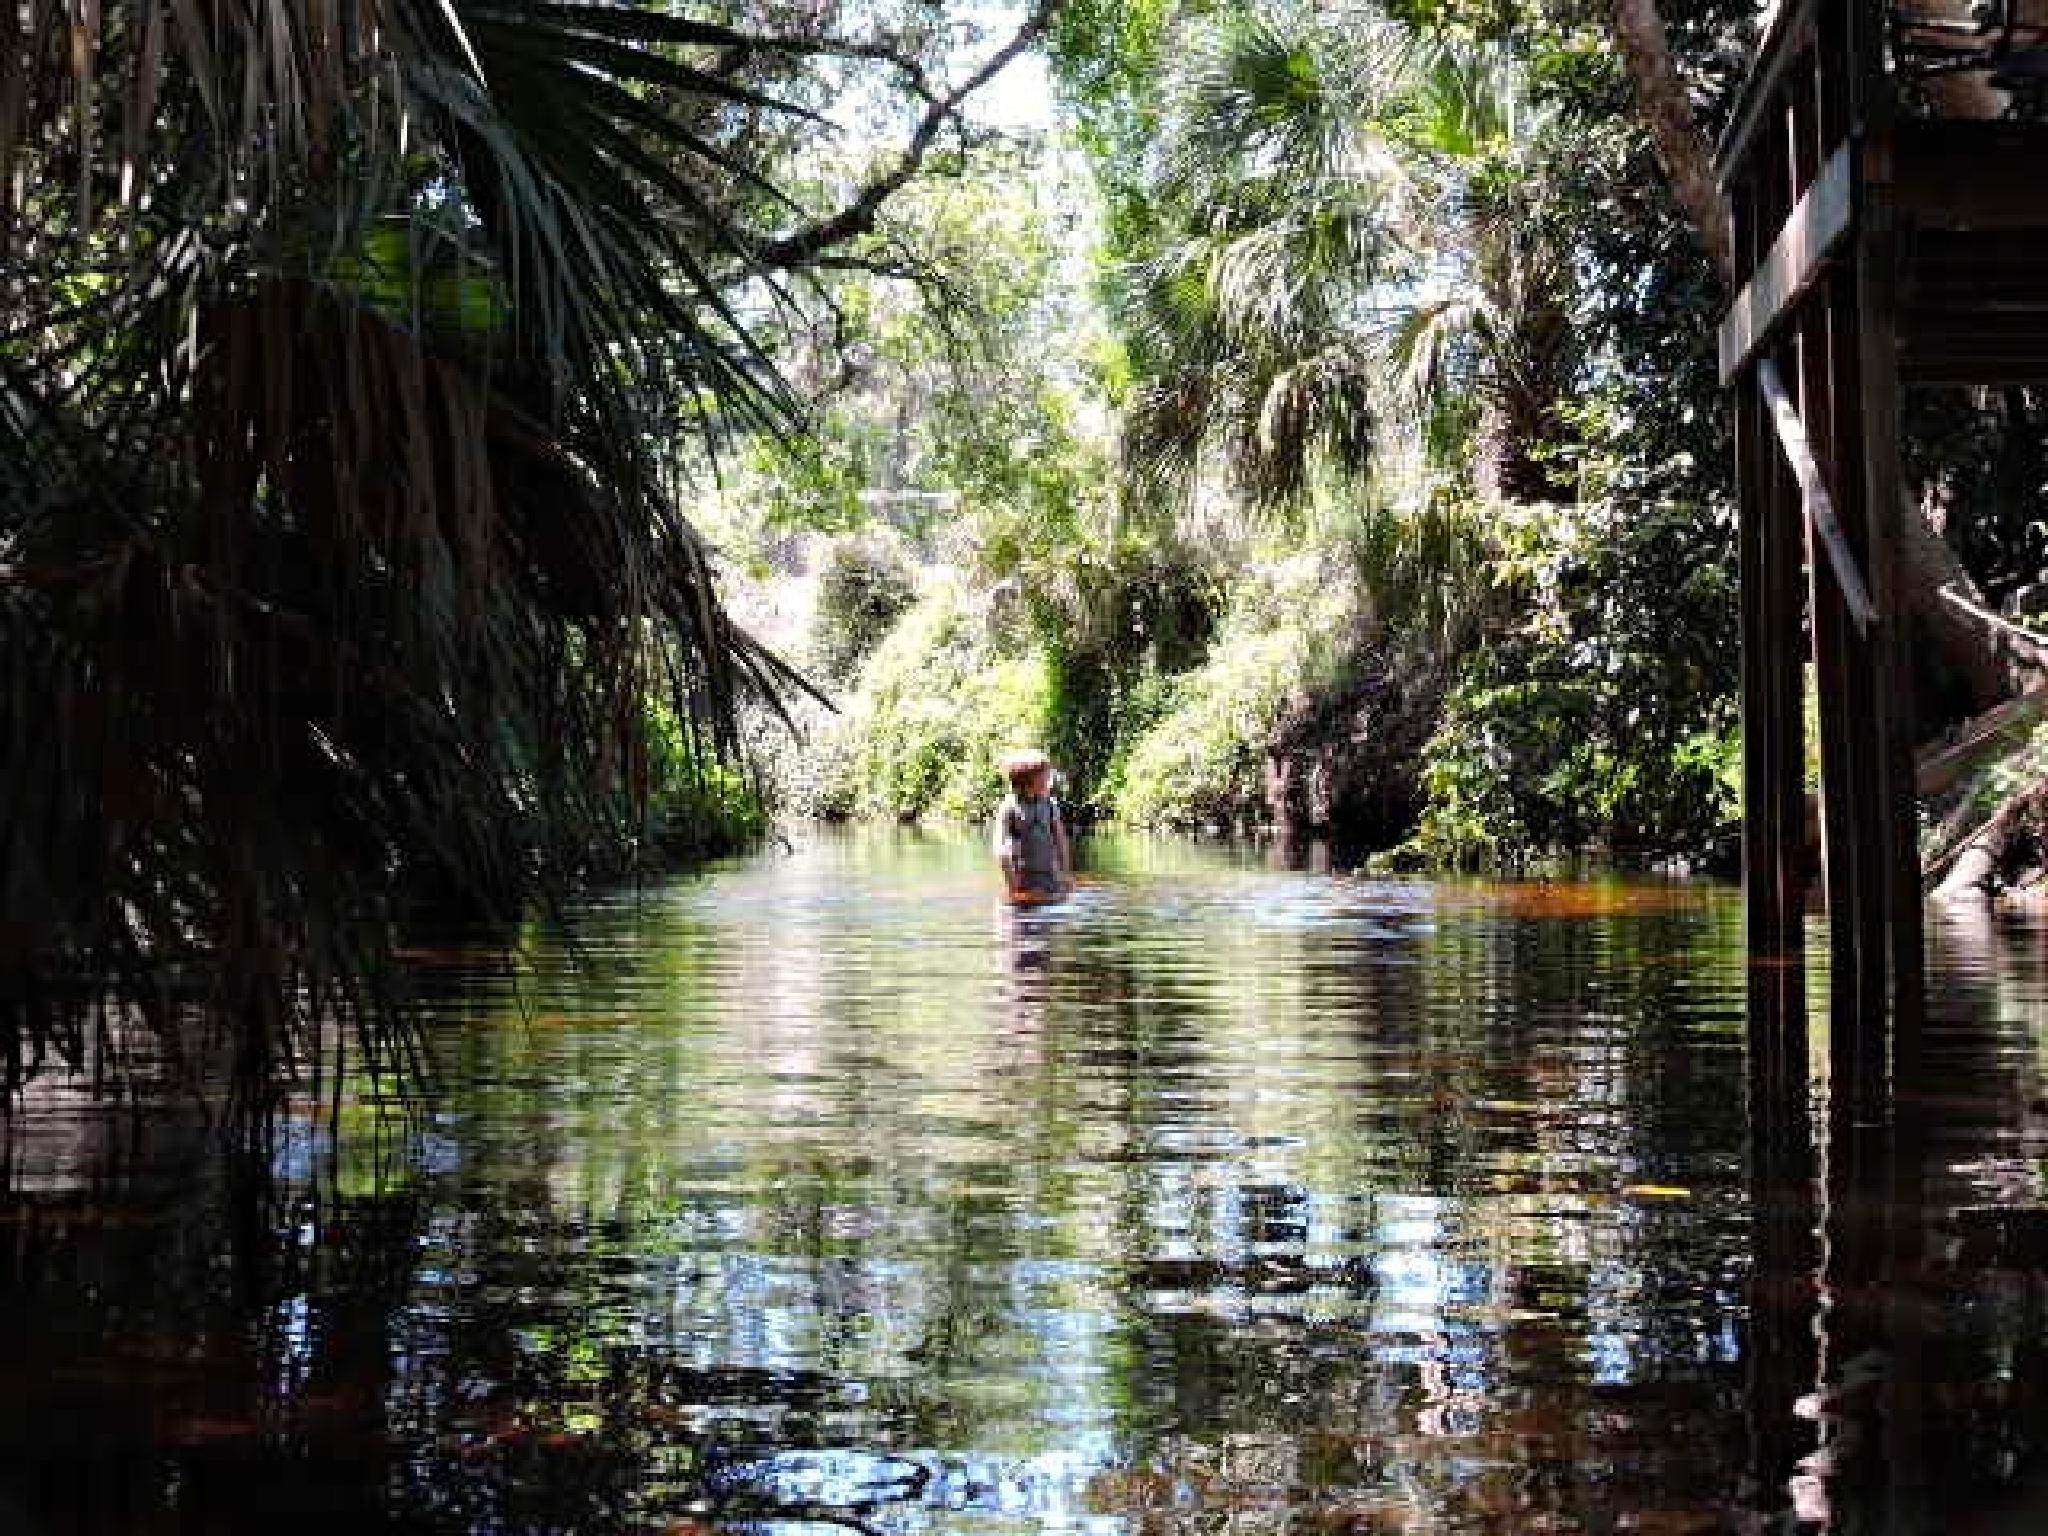 A native Floridian boy wades in the Imperial River. by belinda.phillips.90